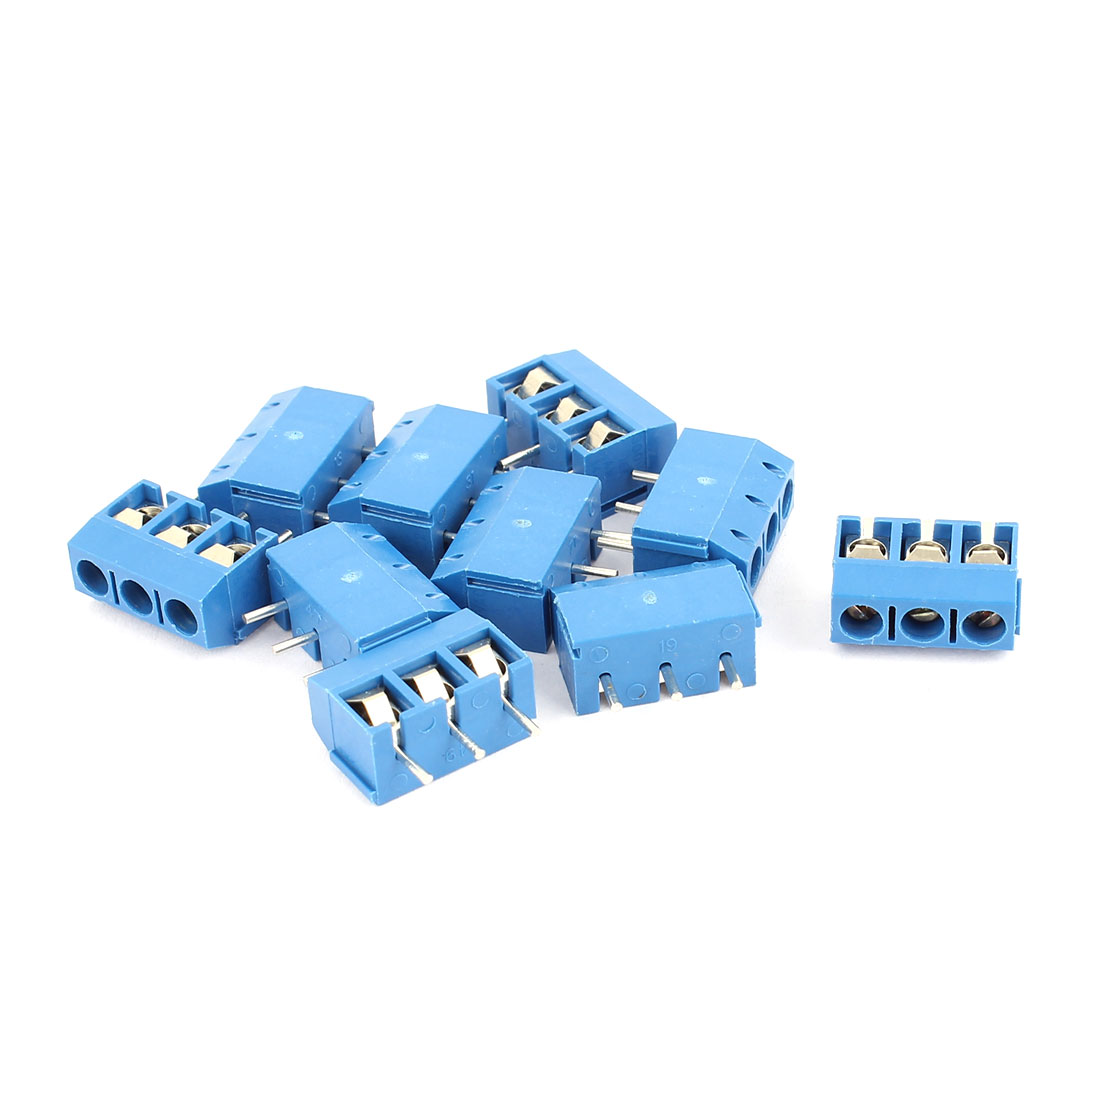 10 Pcs 5mm Pitch 3 Terminals Plug-in Screw Teminal Barrier Blocks Connectors Blue